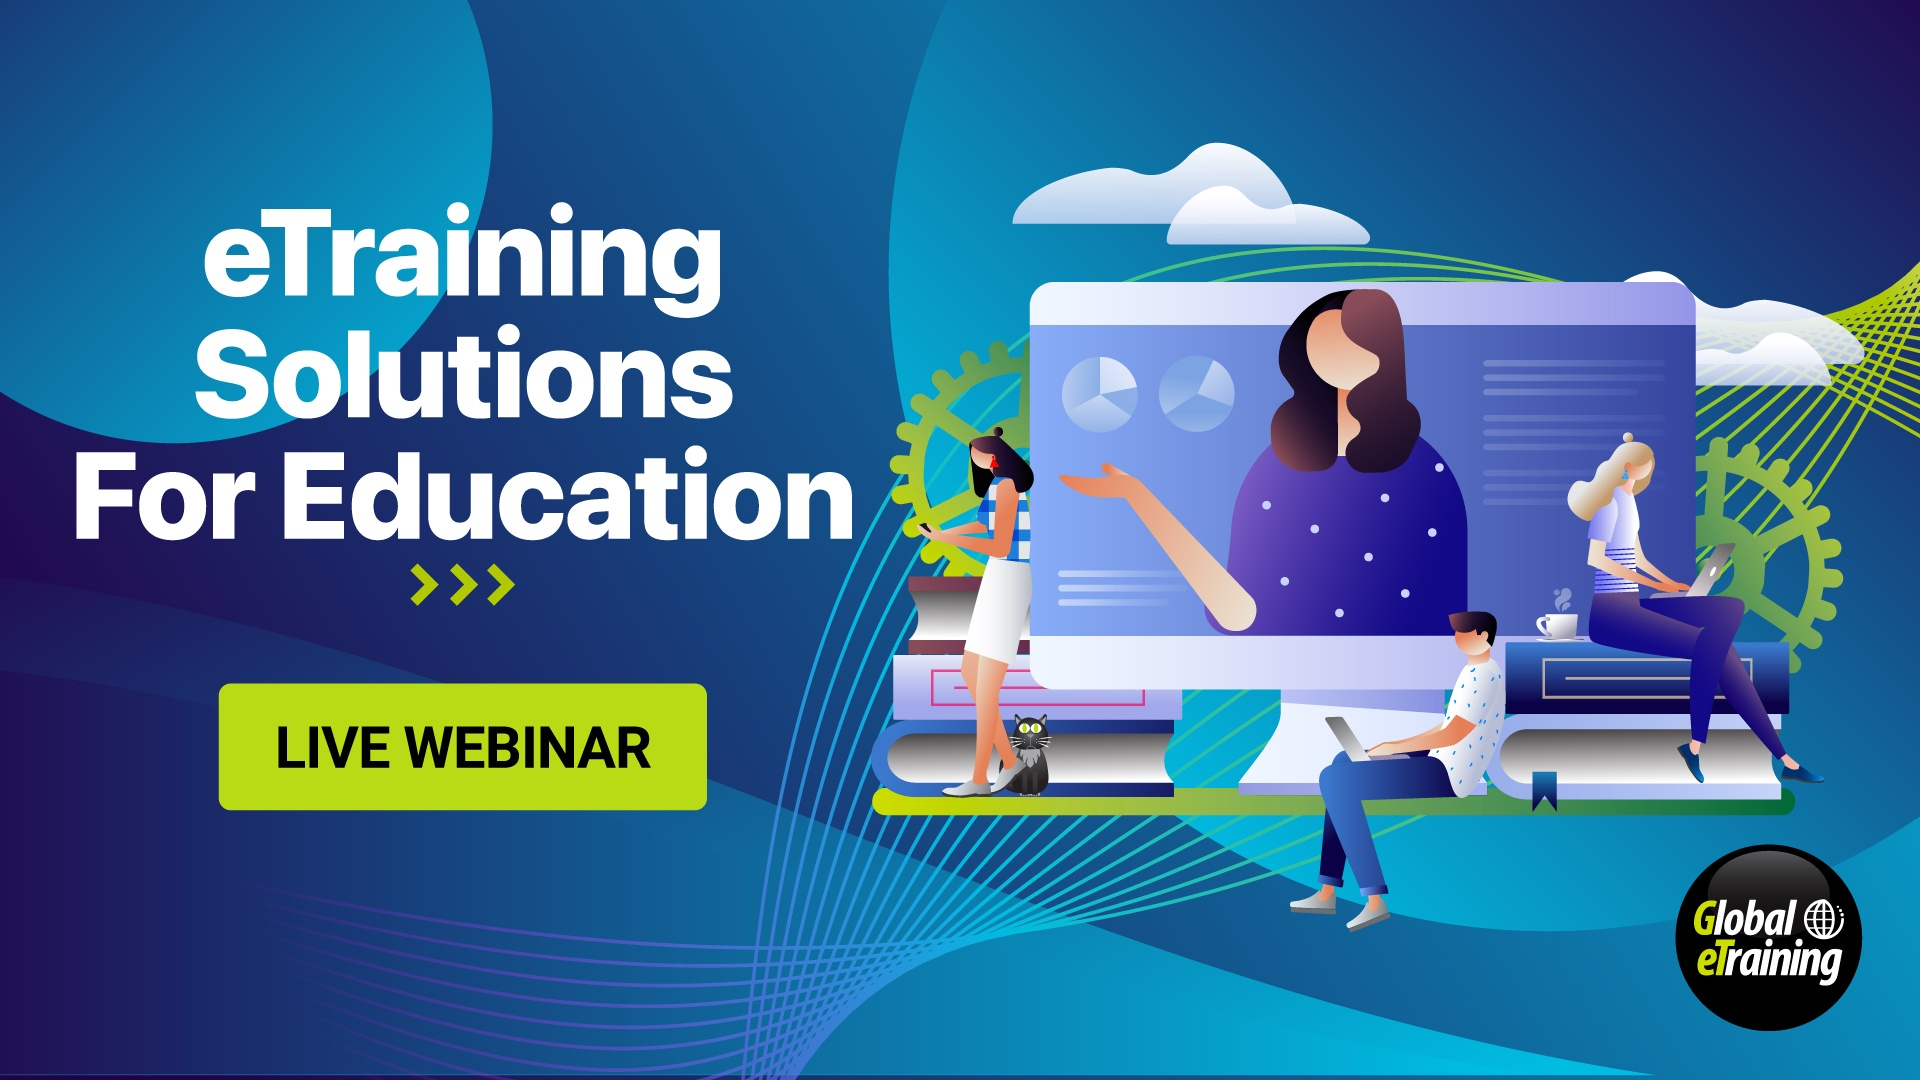 eTraining Solutions for Education